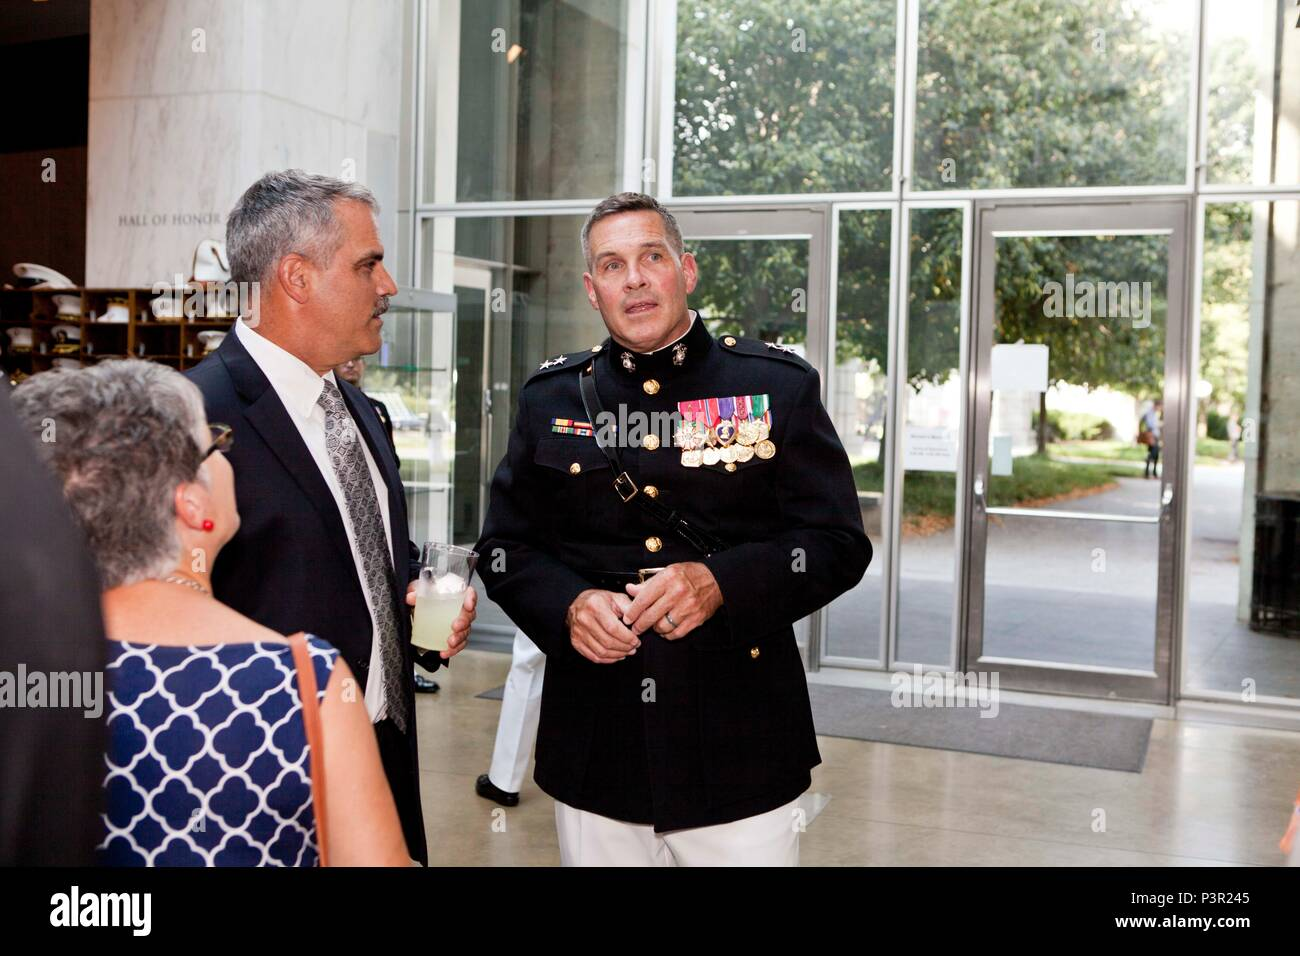 U.S. Marine Corps Maj. Gen. John Ewers, right, staff judge advocate to the commandant of the Marine Corps, speaks with retired U.S. Marine Corps Col. Ray Damm during the sunset parade reception at the Women in Military Service for America War Memorial, Arlington, Va., July 19, 2016. Sunset parades are held as a means of honoring senior officials, distinguished citizens and supporters of the Marine Corps. (U.S. Marine Corps photo by Lance Paul A. Ochoa) Stock Photo